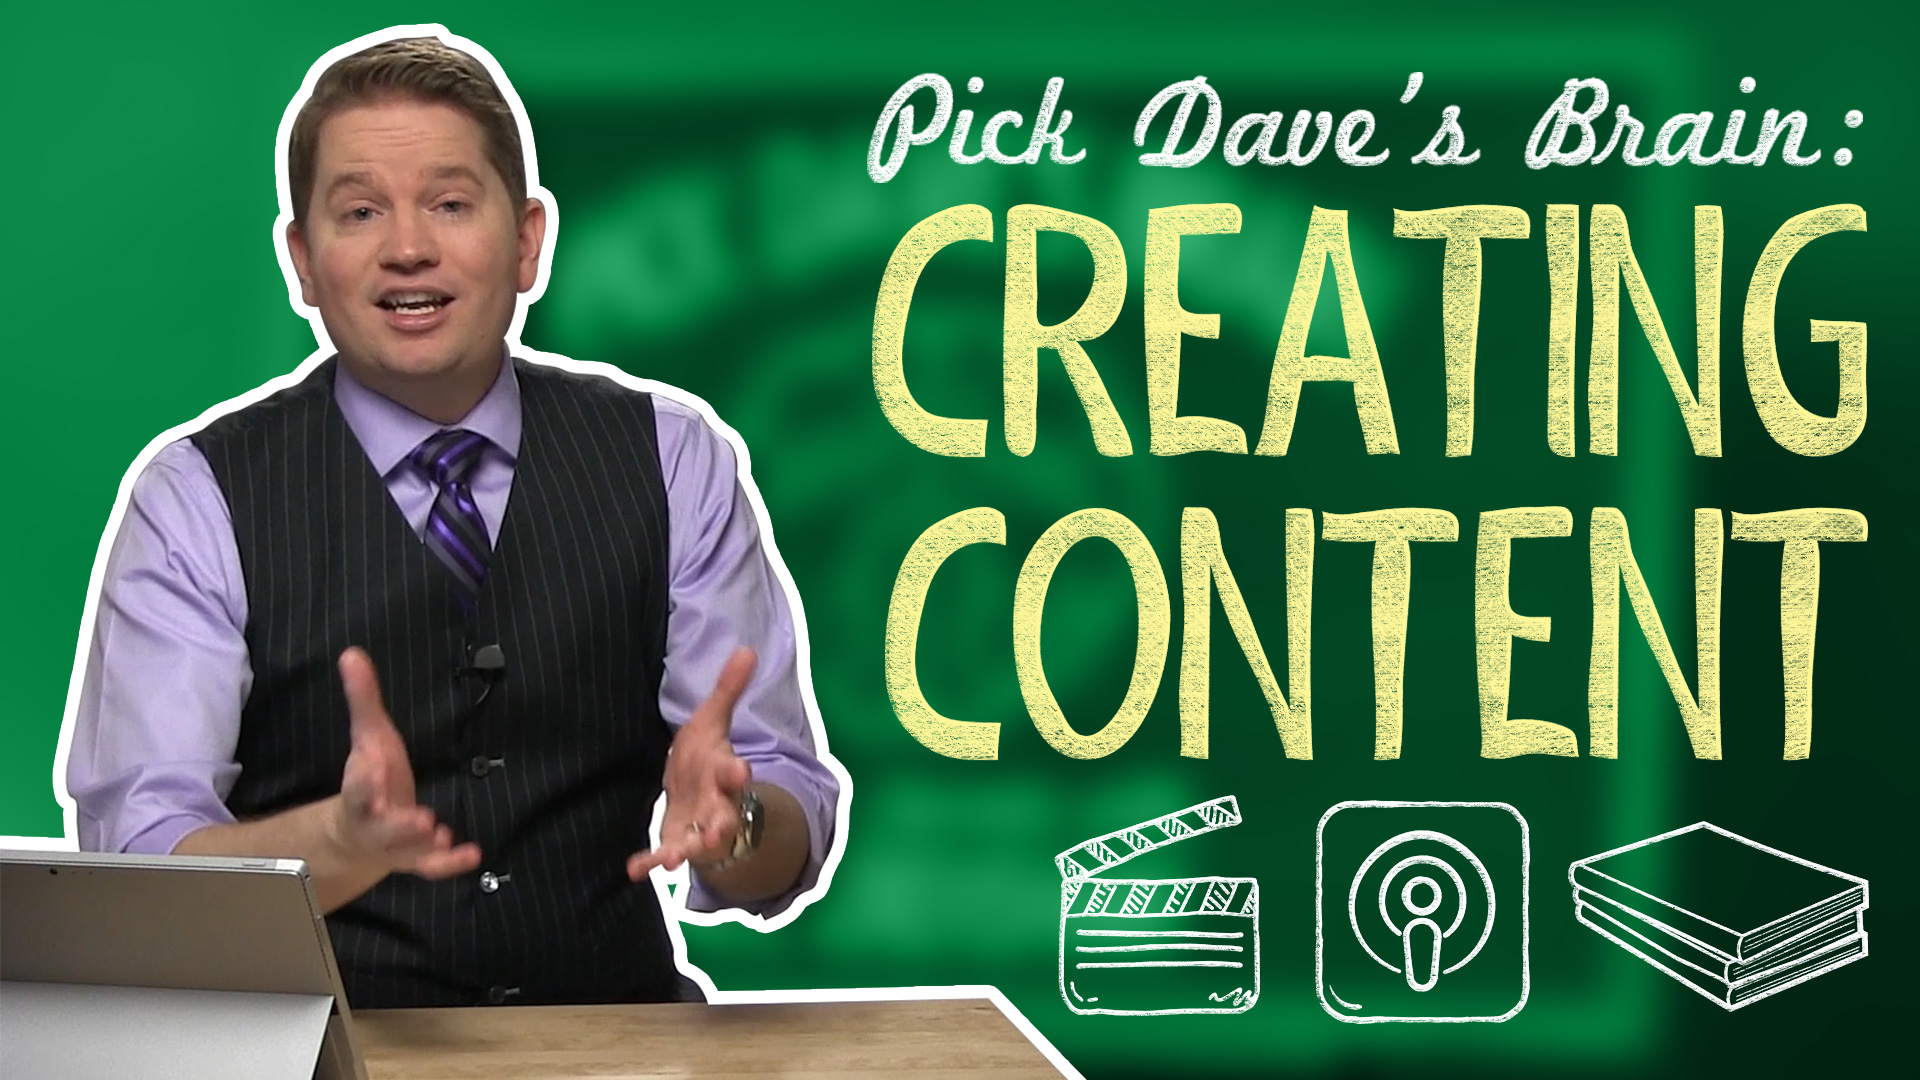 How to Be the 'Guru' by Creating Content – Pick Dave's Brain